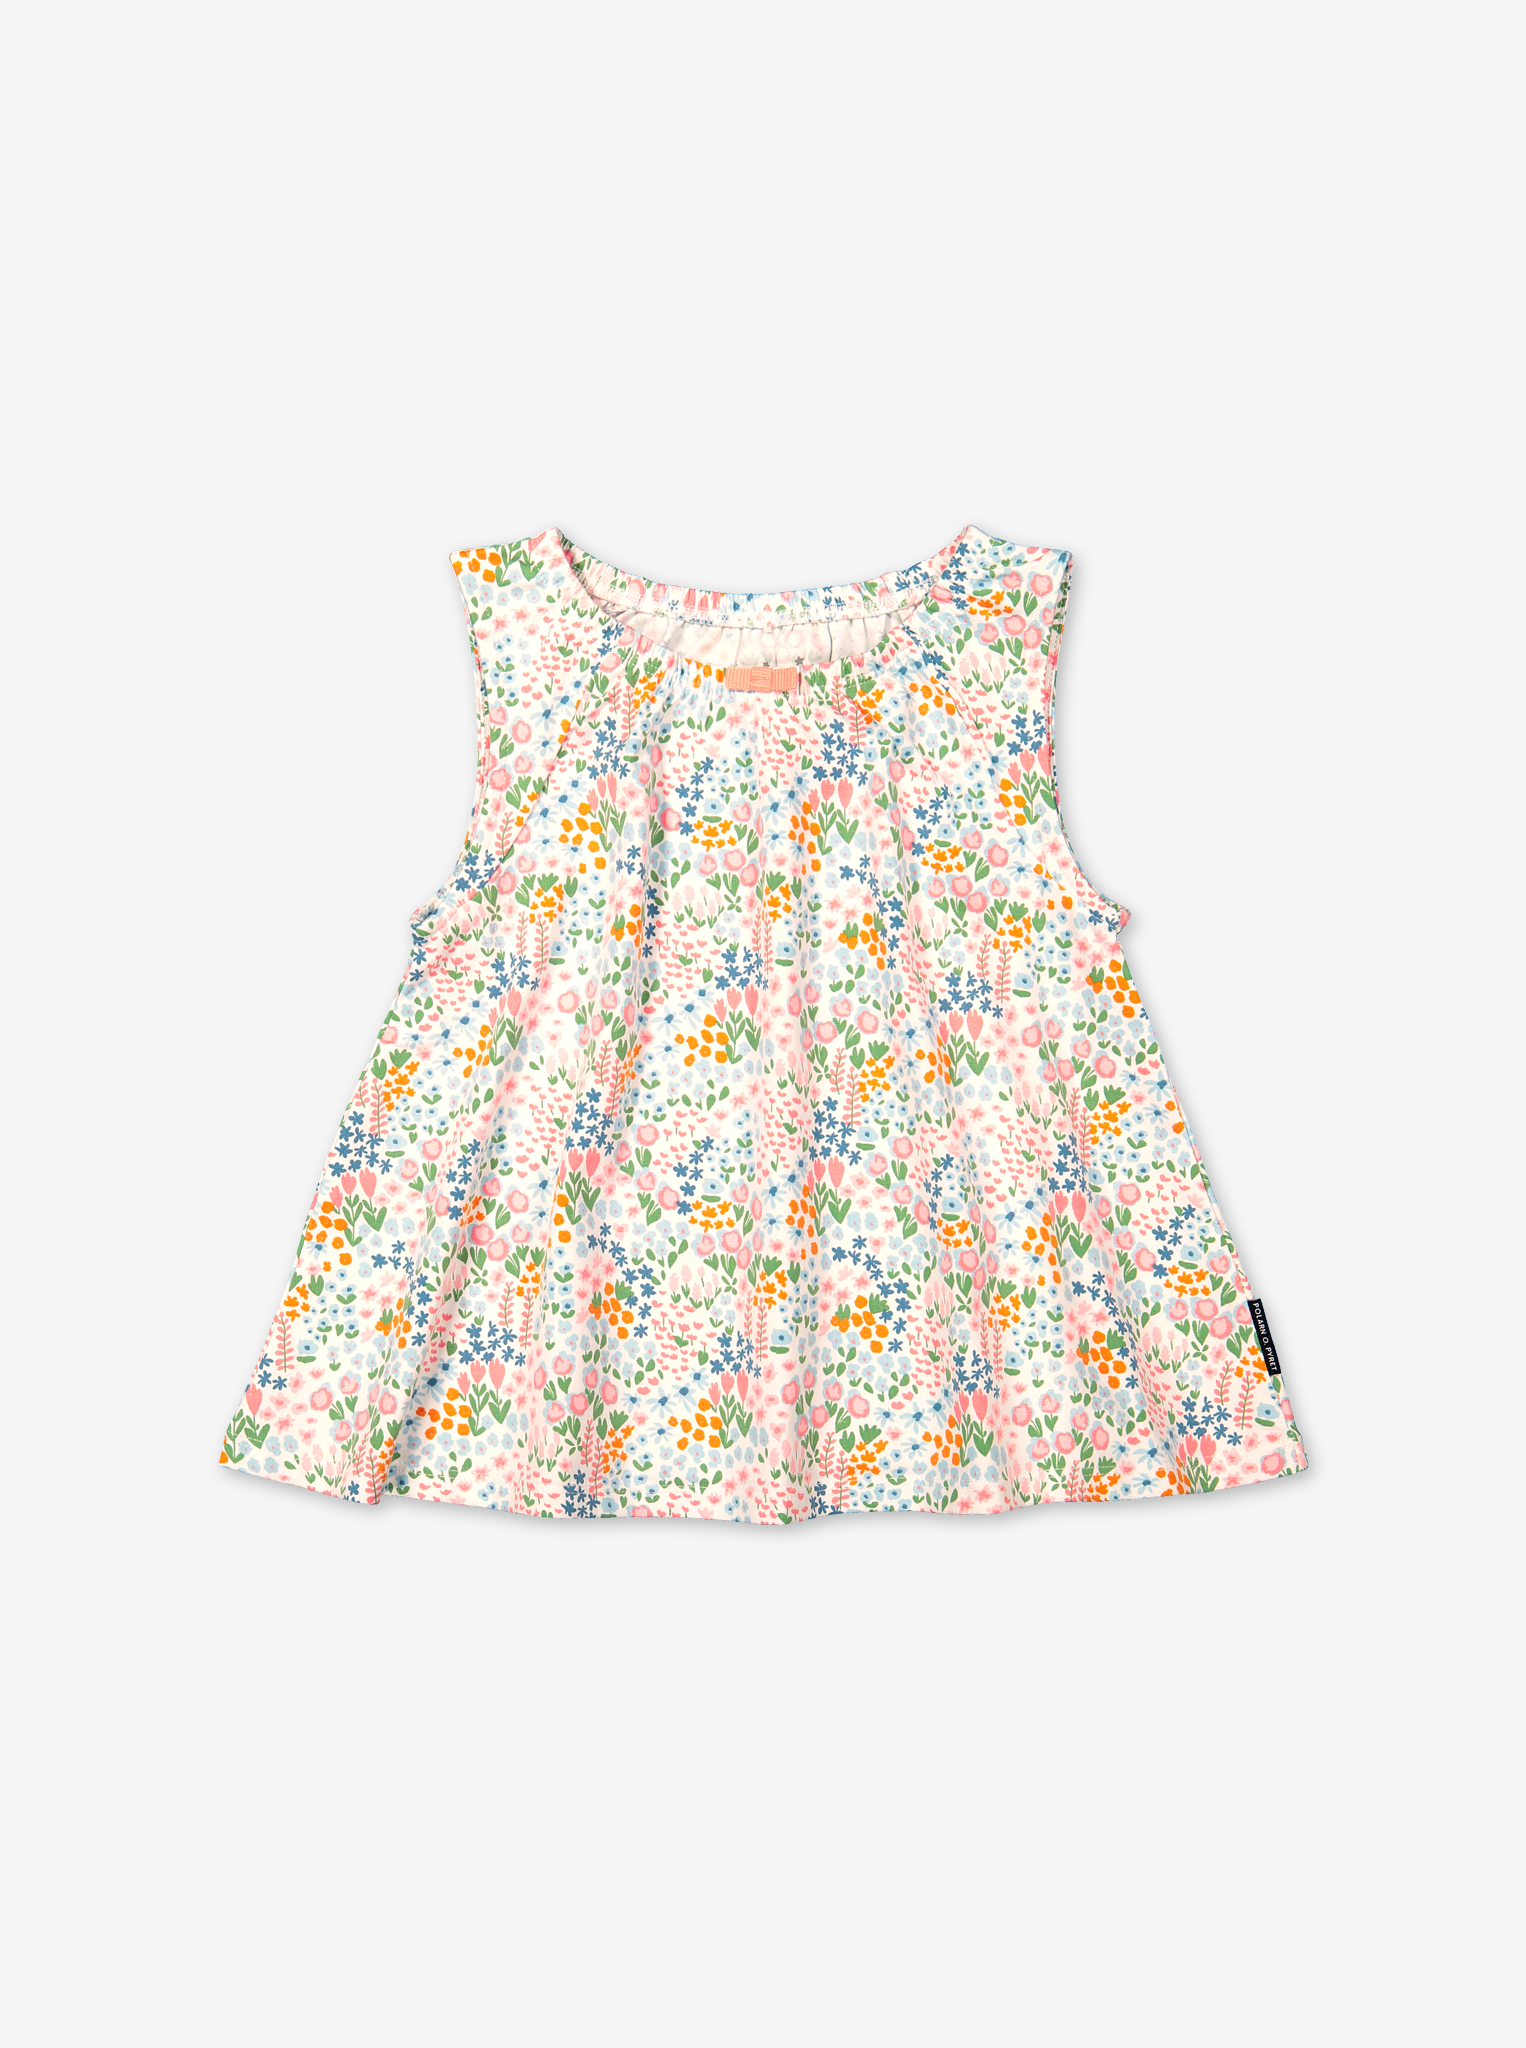 Ditsy Floral Short Kids Pyjamas-Girl-1-12y-White